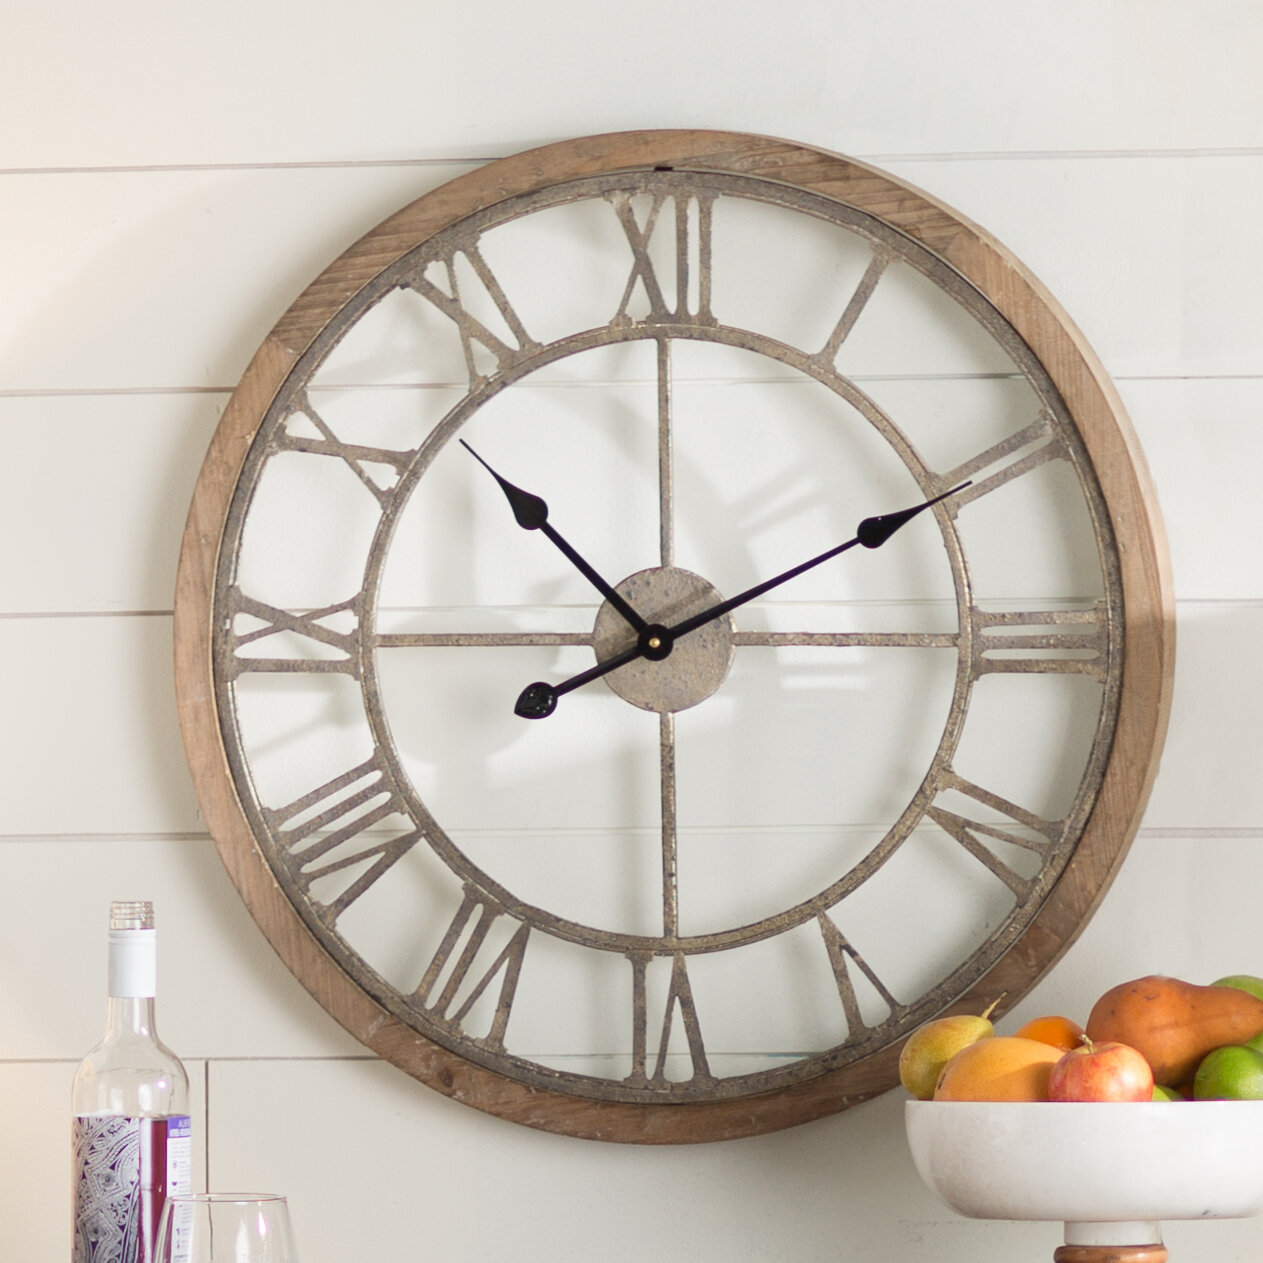 laurel foundry modern farmhouse natural wood wall clock reviews